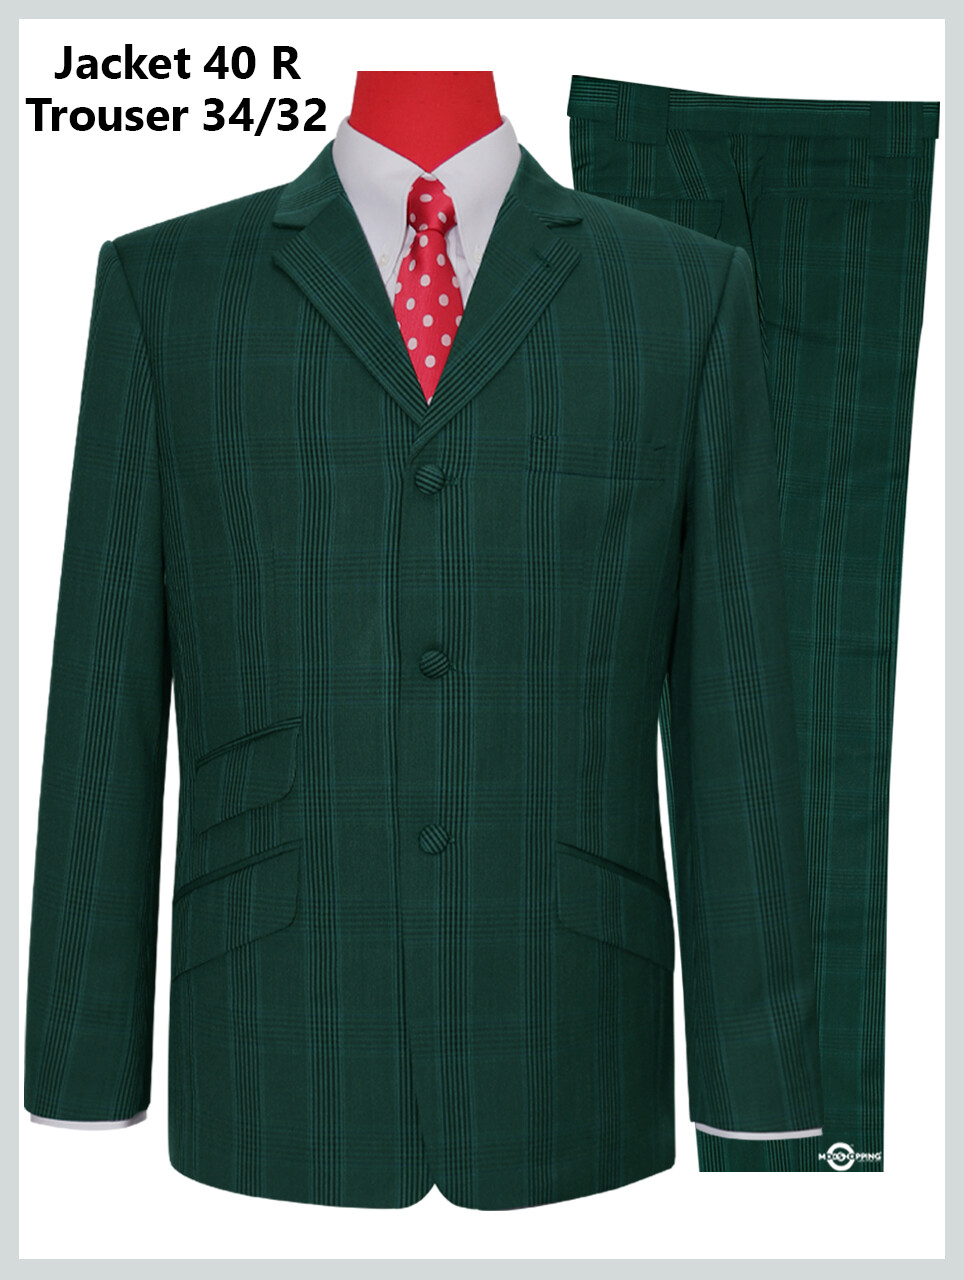 Olive Green Color Prince Of Wales Check  Suit Jacket 40R & 34/32 Trouser